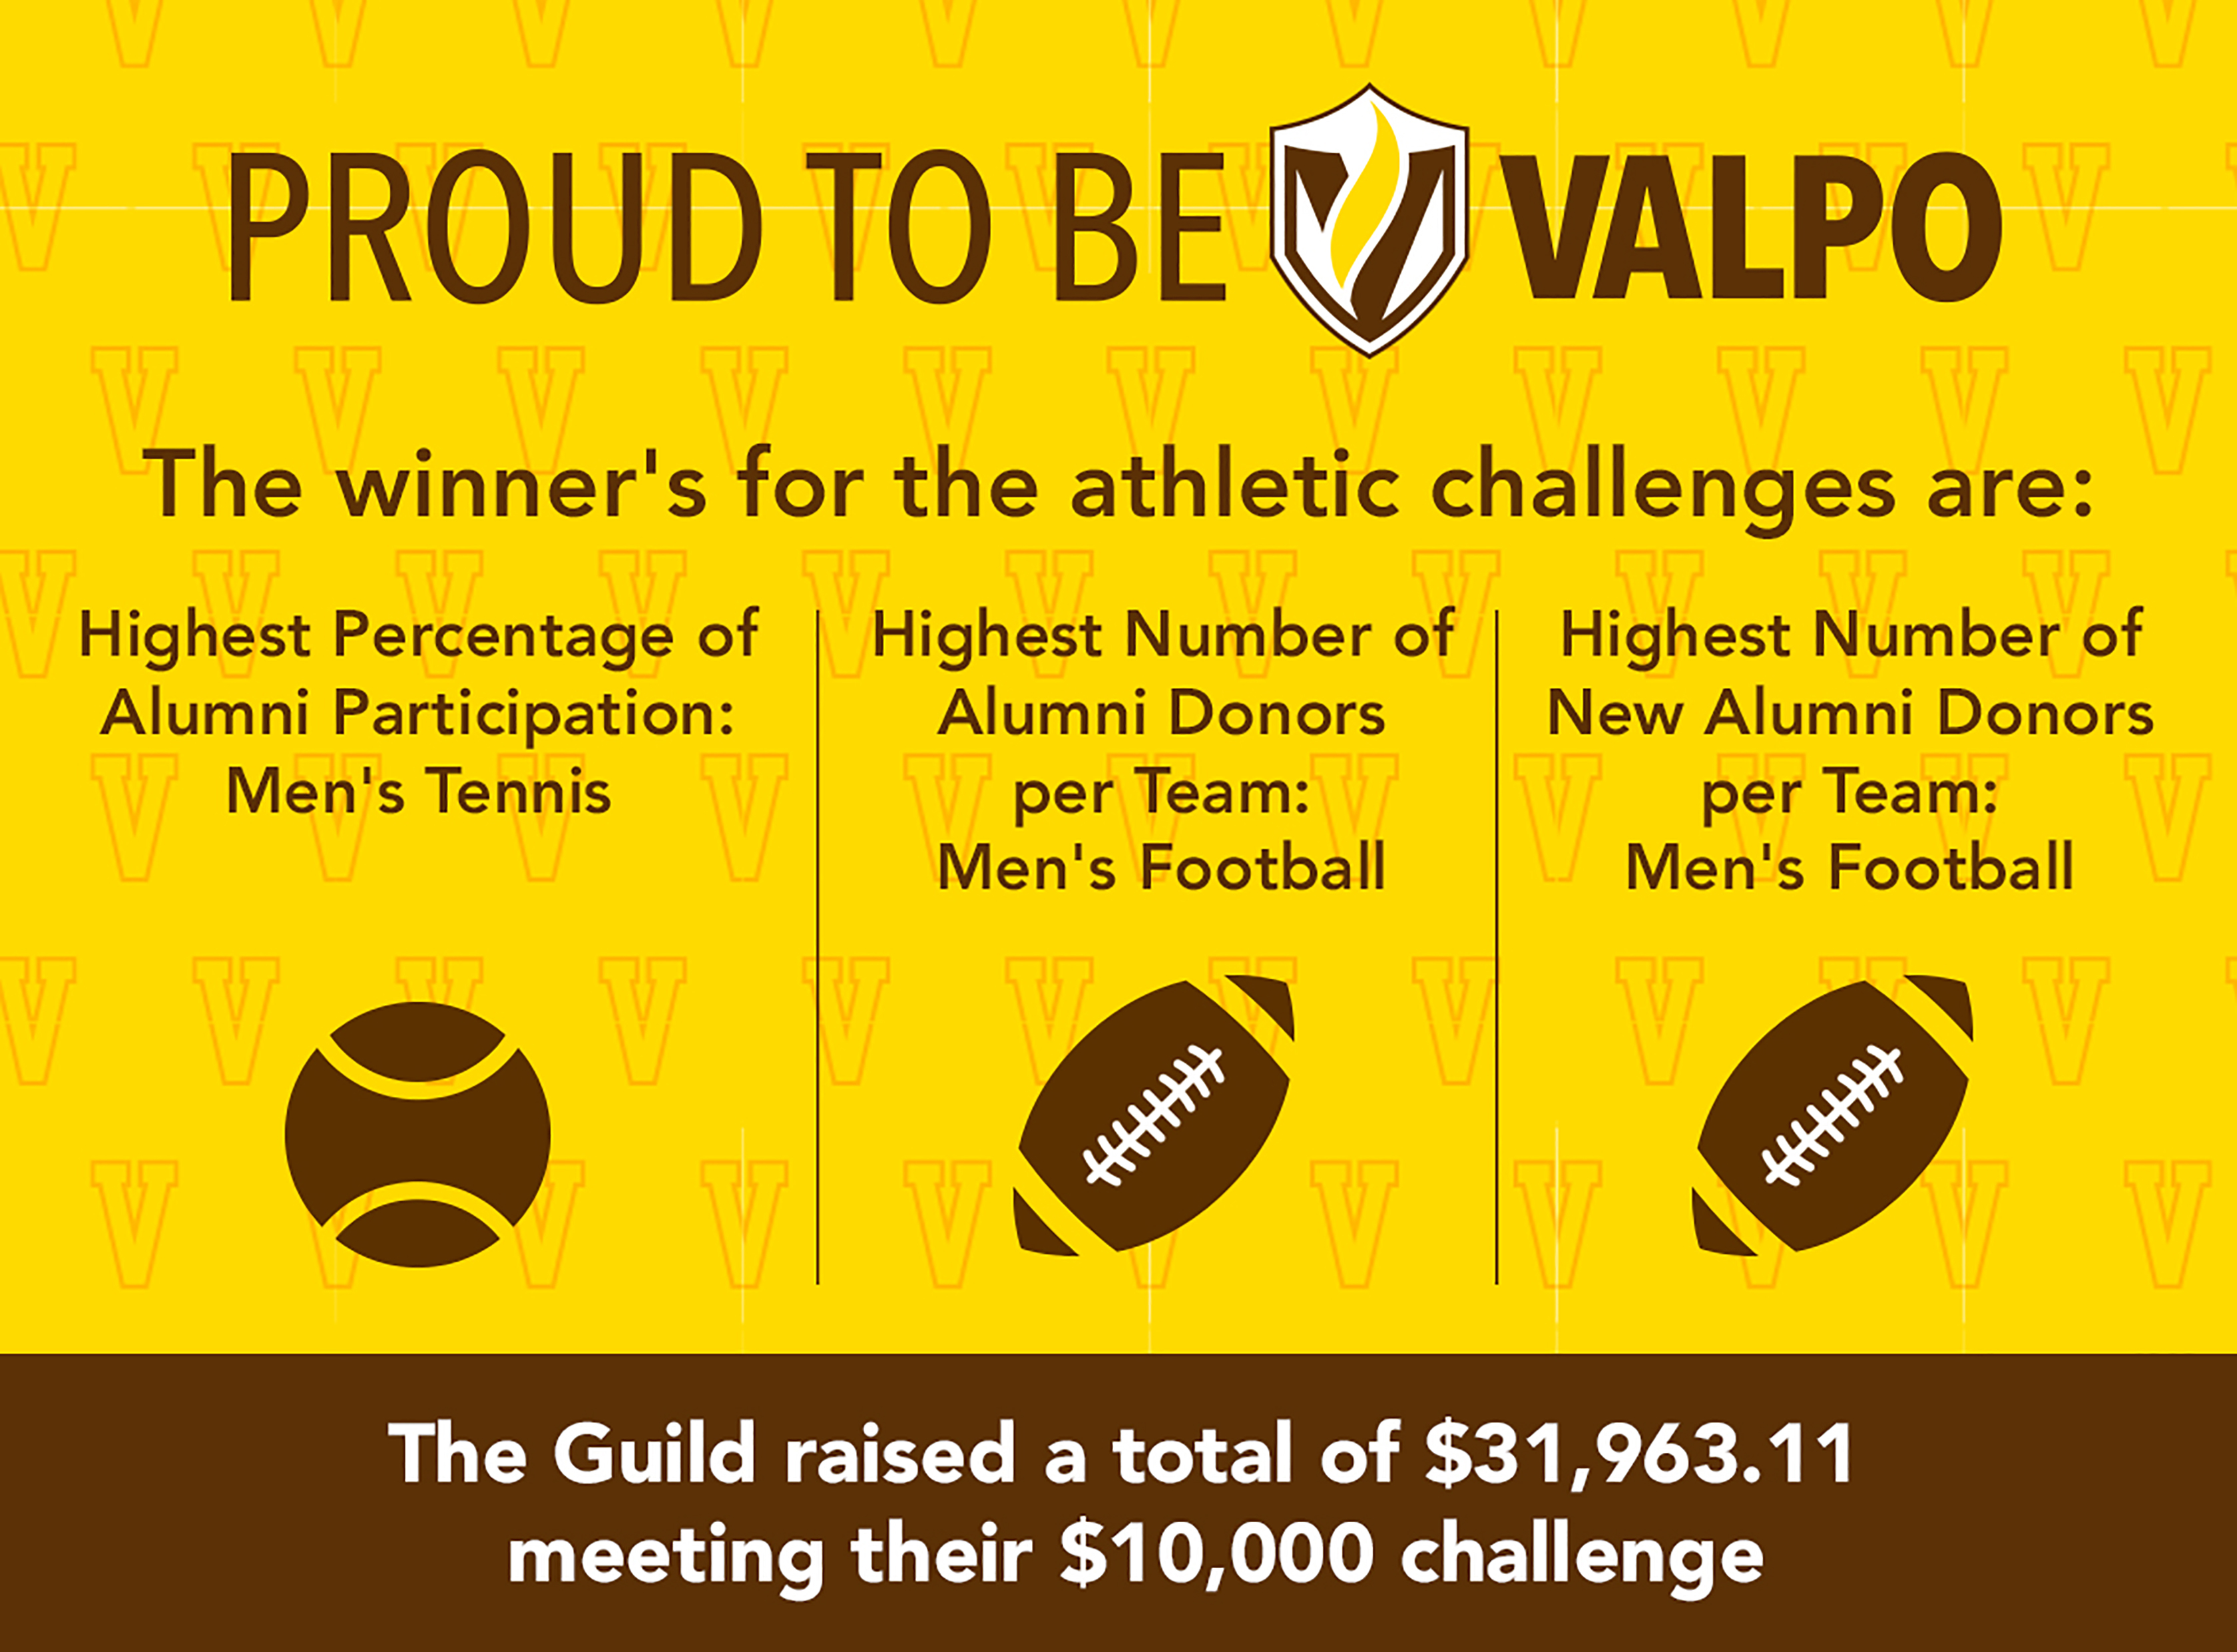 Proud To Be Valpo By the Numbers: Total Donors $714,997, Total Donors 2,107, Top Class Year Participation from 1971 and 1973, Thank You Notes Written 2,739, Total Alumni Donors 1,732, Smallest gift $1, Largest Gift $52,500, 1st Pitch Thrown by the Crusader, 1 Golden Jacket Worn, 500 scoops of Ice Cream Served, 9 Golf Cart Drivers, Number of Households Who Have Donated All 5 Years.